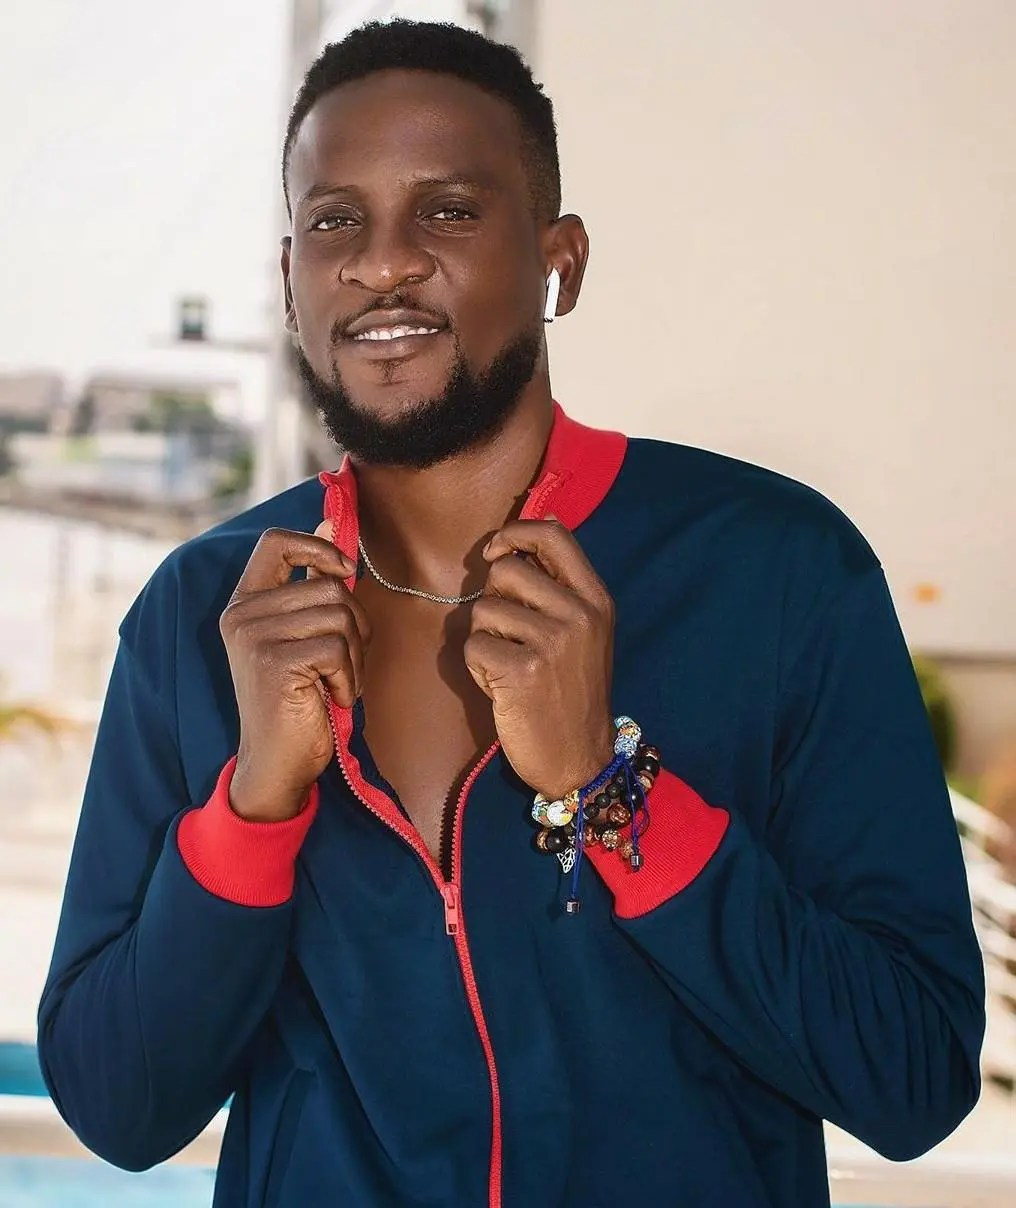 Omashola Bags A Multi-Million Dollar Deal With South African Airline Company